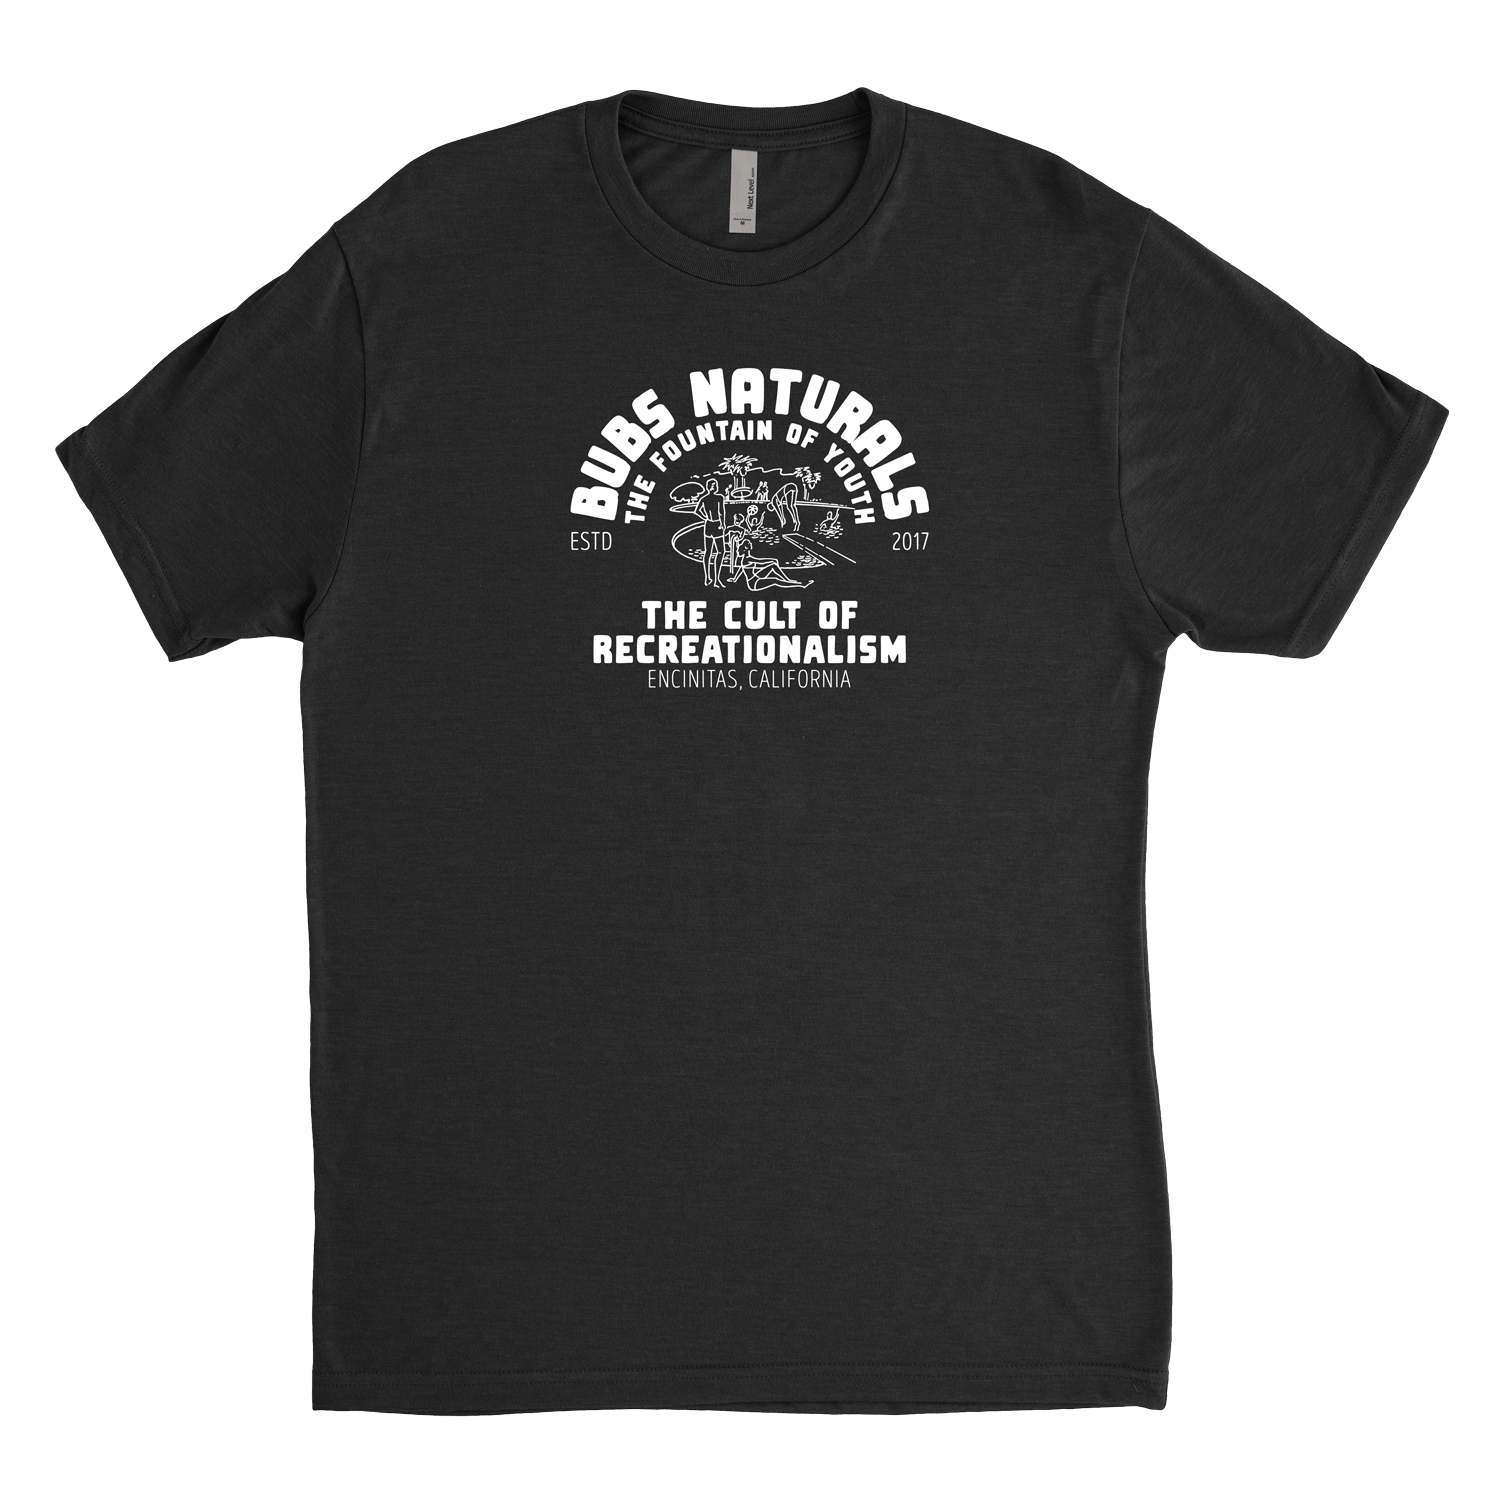 Cult of Recreationalism BUBS NATURALS